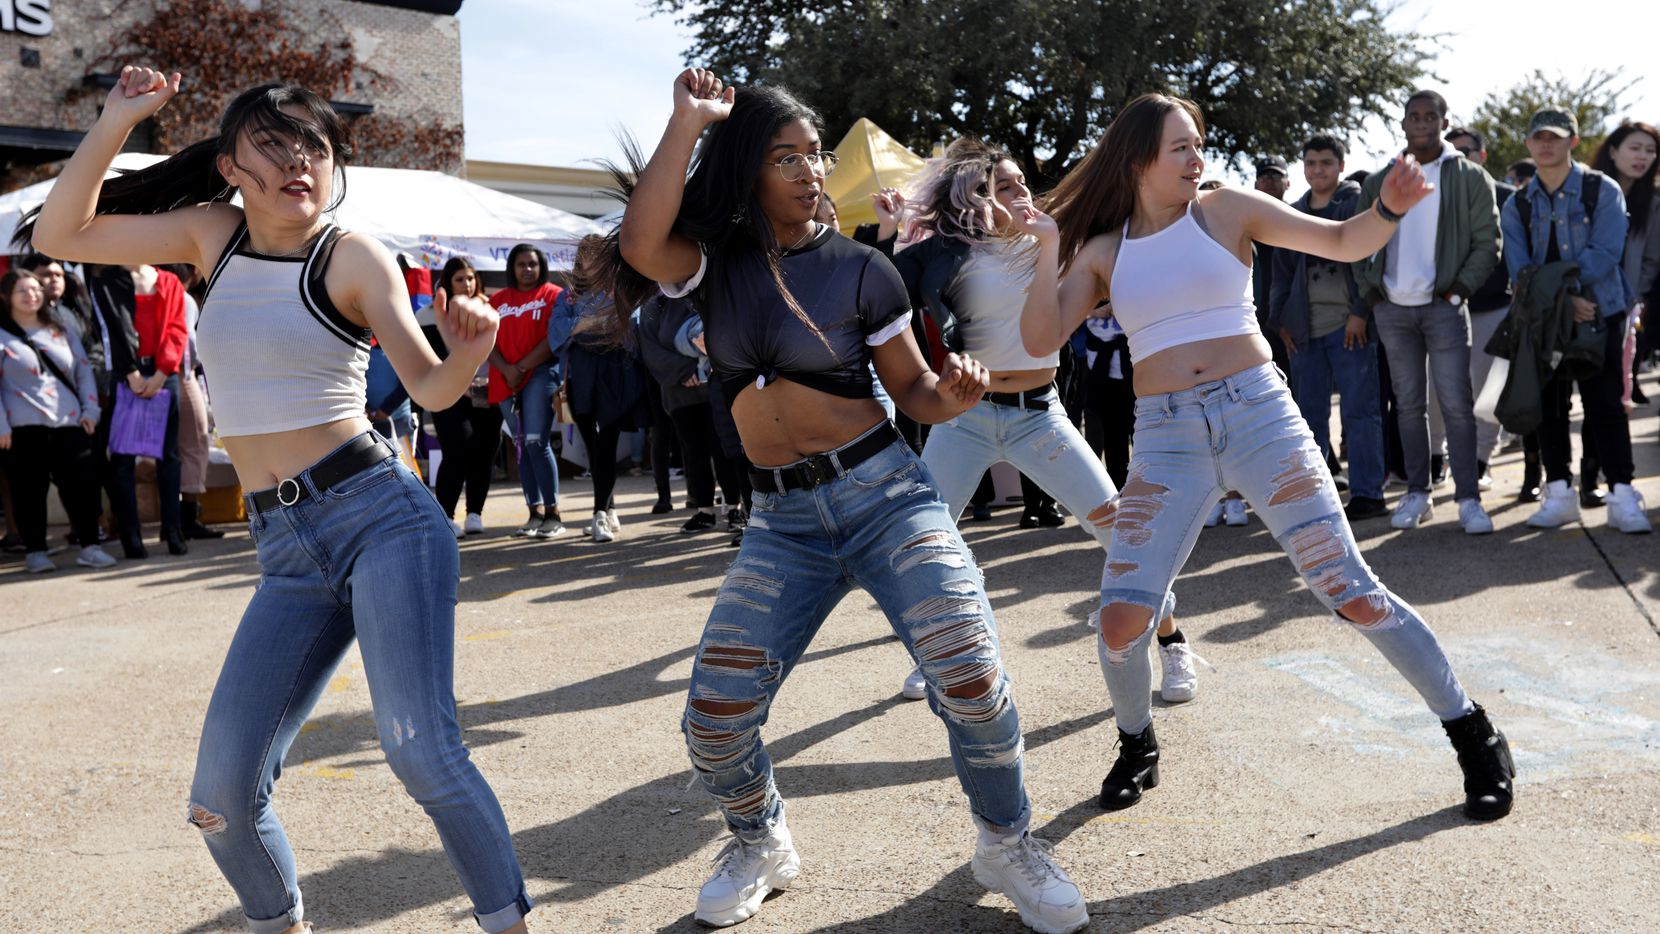 The growing diversity in North Texas suburbs such as Carrollton is fertile ground for Democrats.  Groups dance to K-Pop songs during the Korean Festival at the Carrollton Asian Town Center in Carrollton, TX, on Nov. 16, 2019. (Jason Janik/Special Contributor)